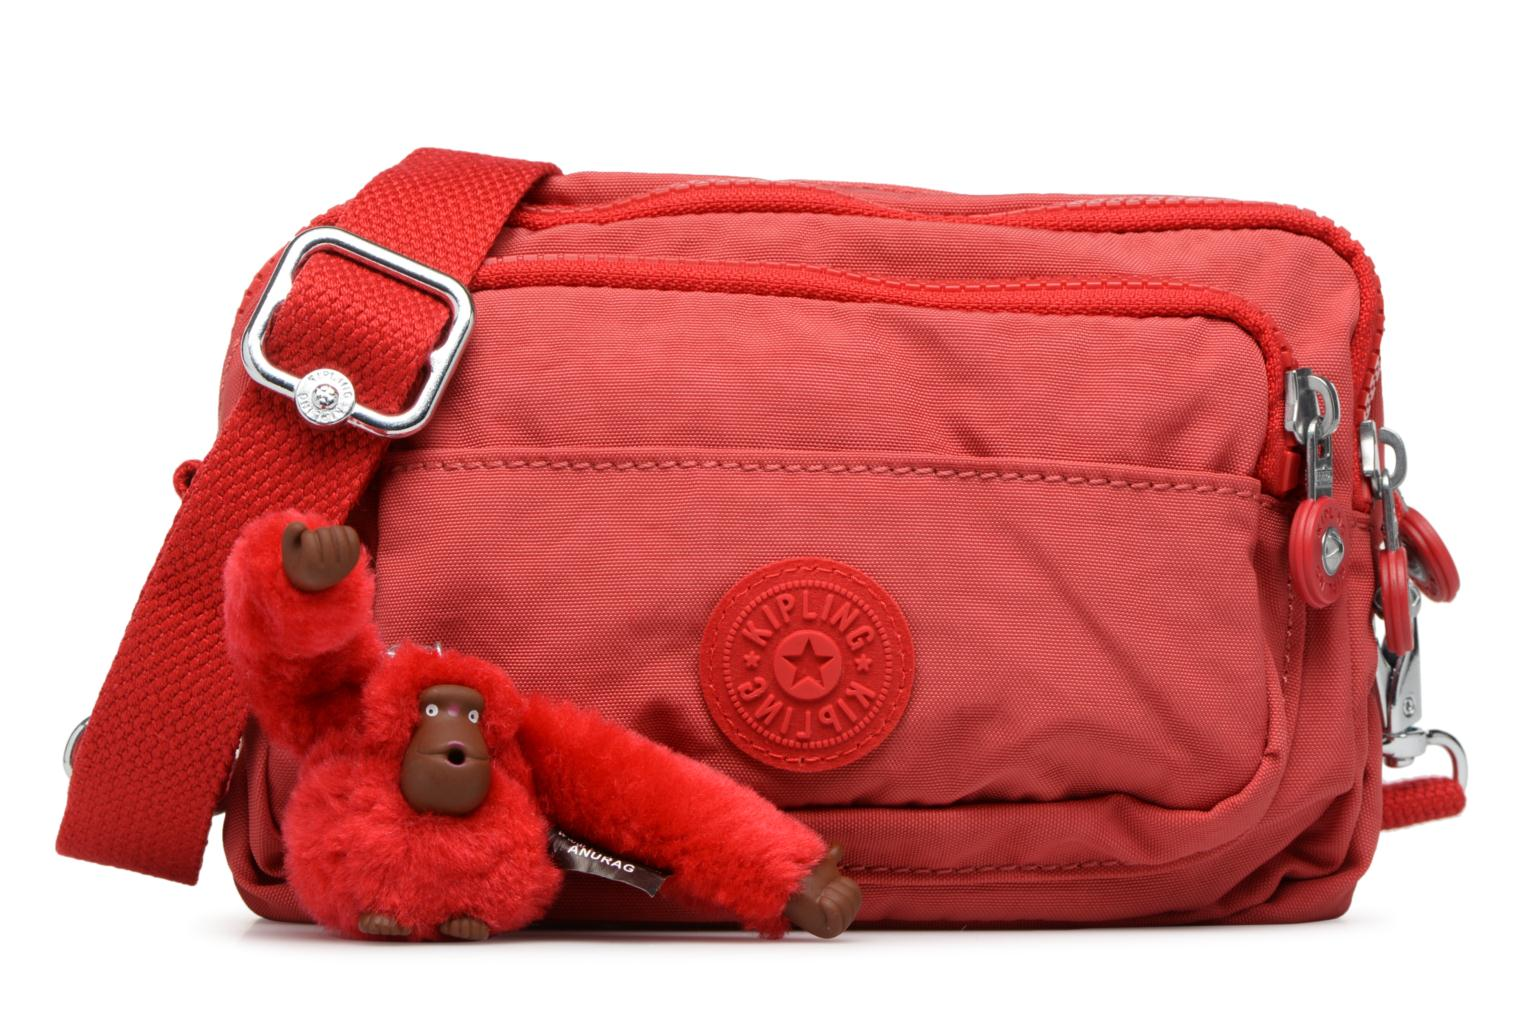 C kipling kipling Red Spicy Multiple Multiple axa61qfTw